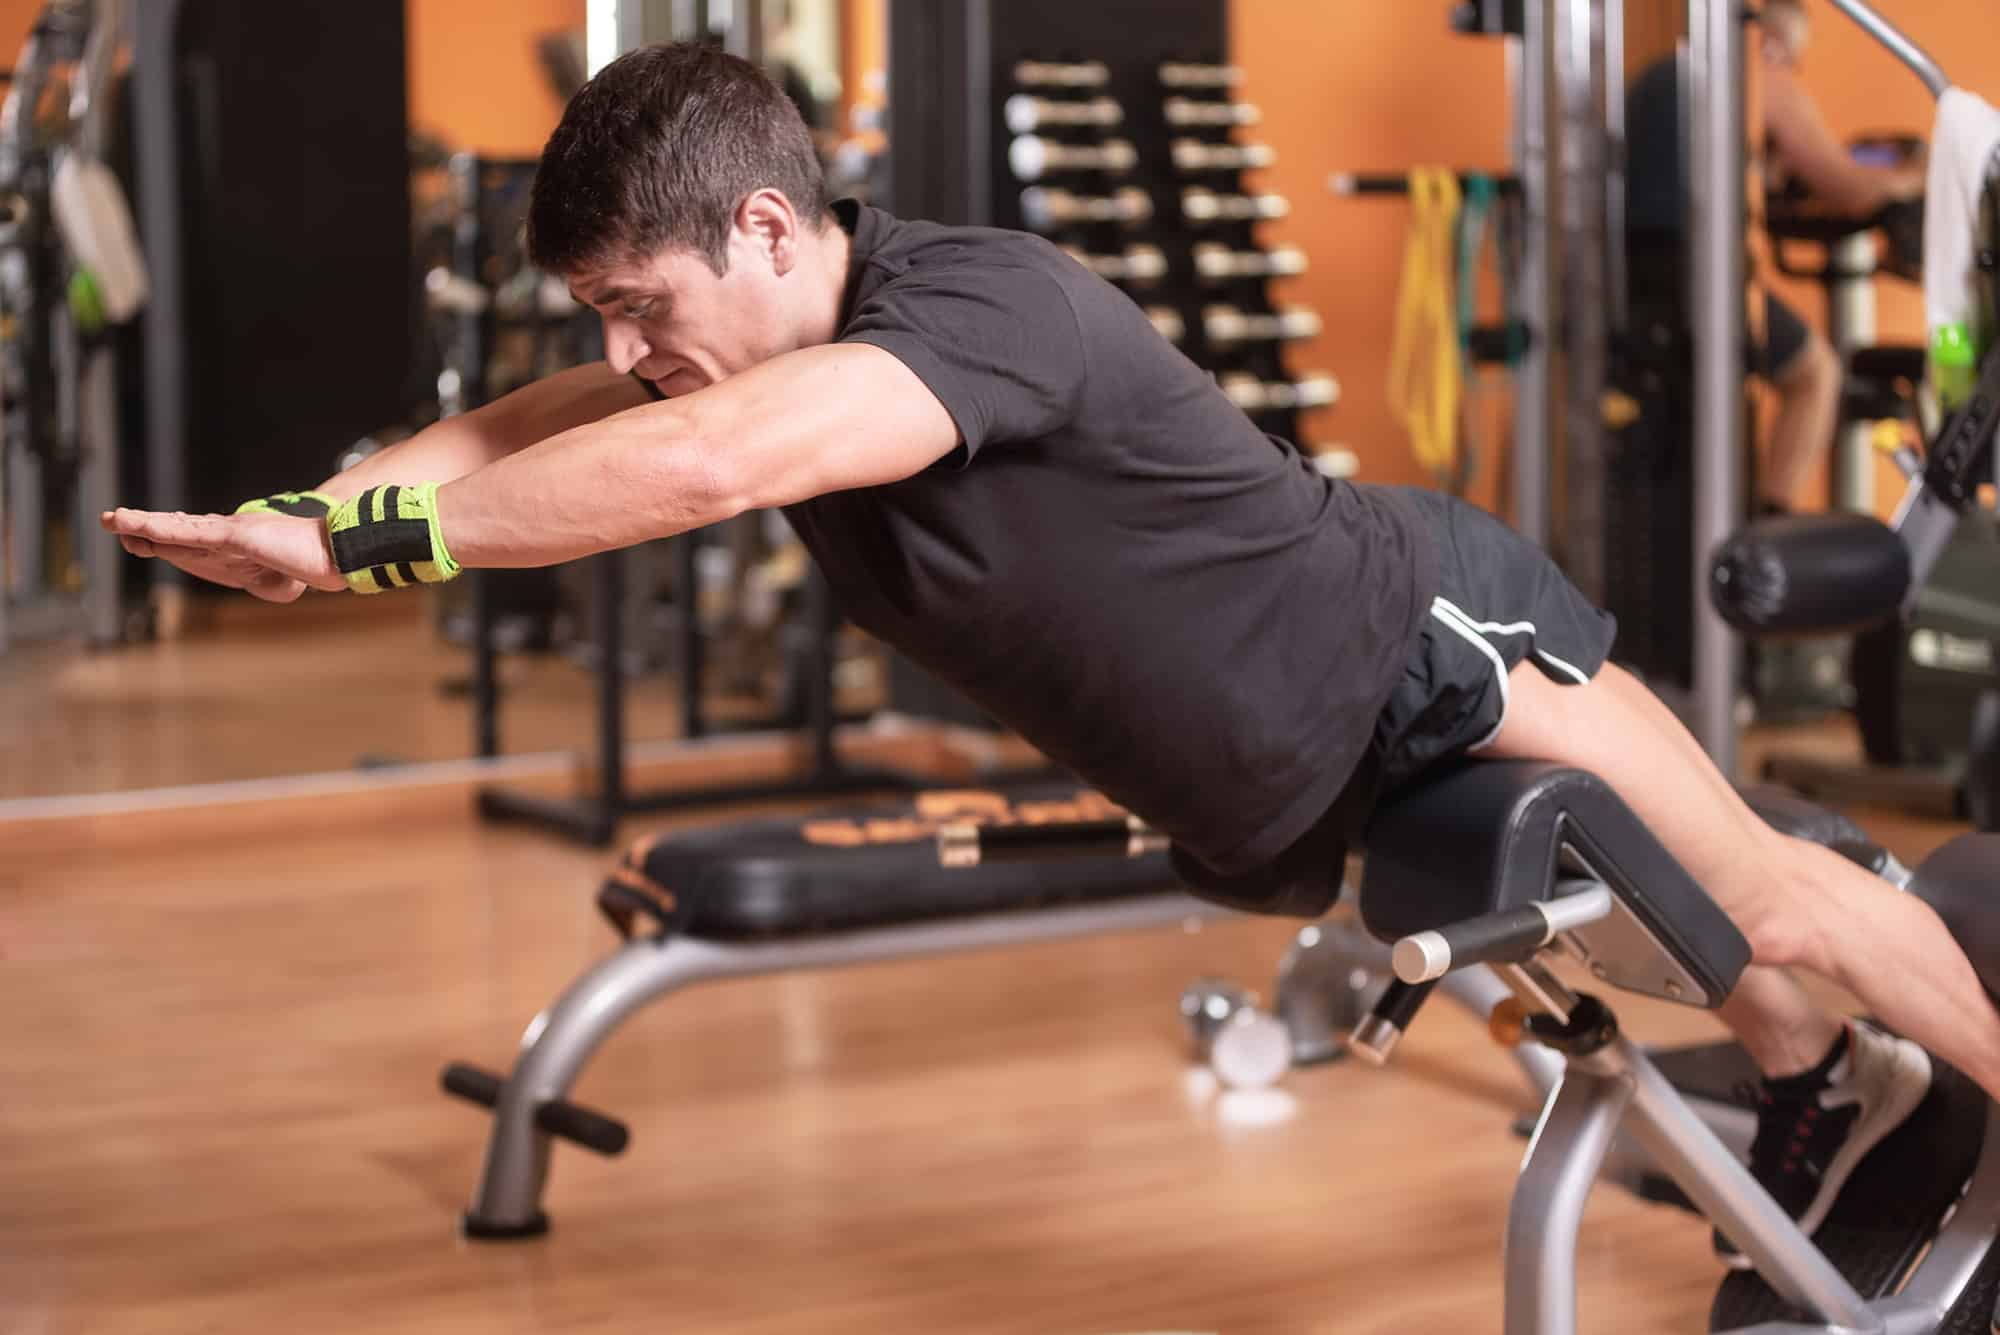 Lower back exercises for strengthening the muscles